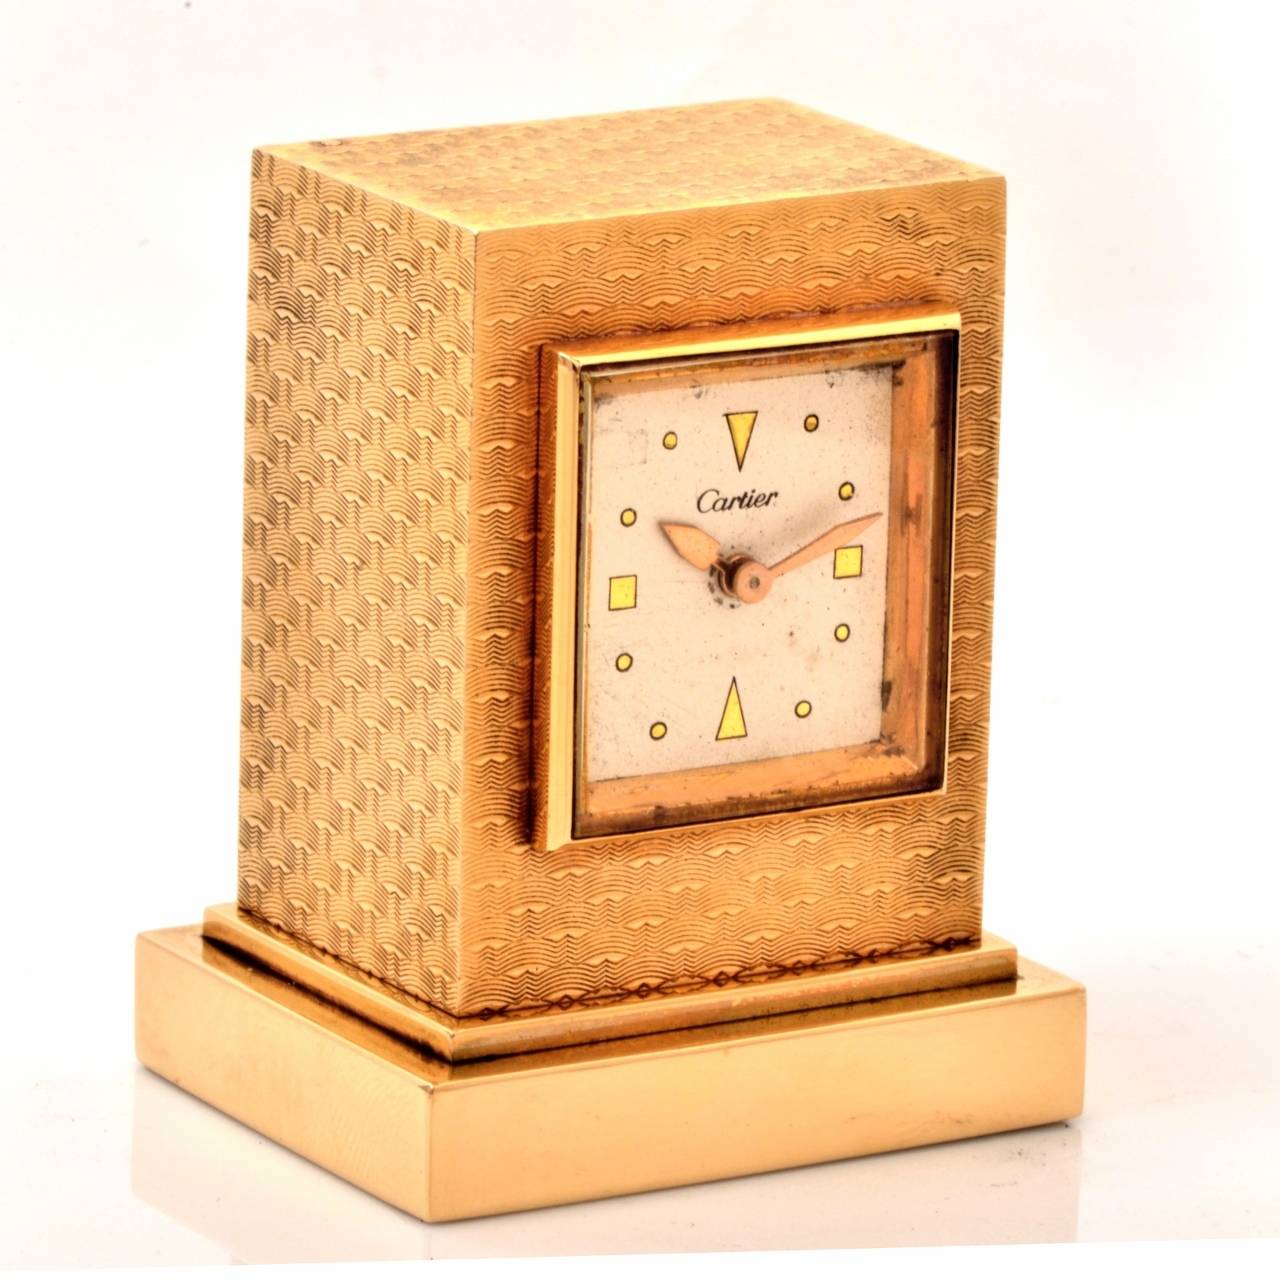 This aesthetically captivating authentic circa 1950 Cartier eight-day desk clock with a 14K yellow gold case weighs 117.2 grams and measures 2 1/8